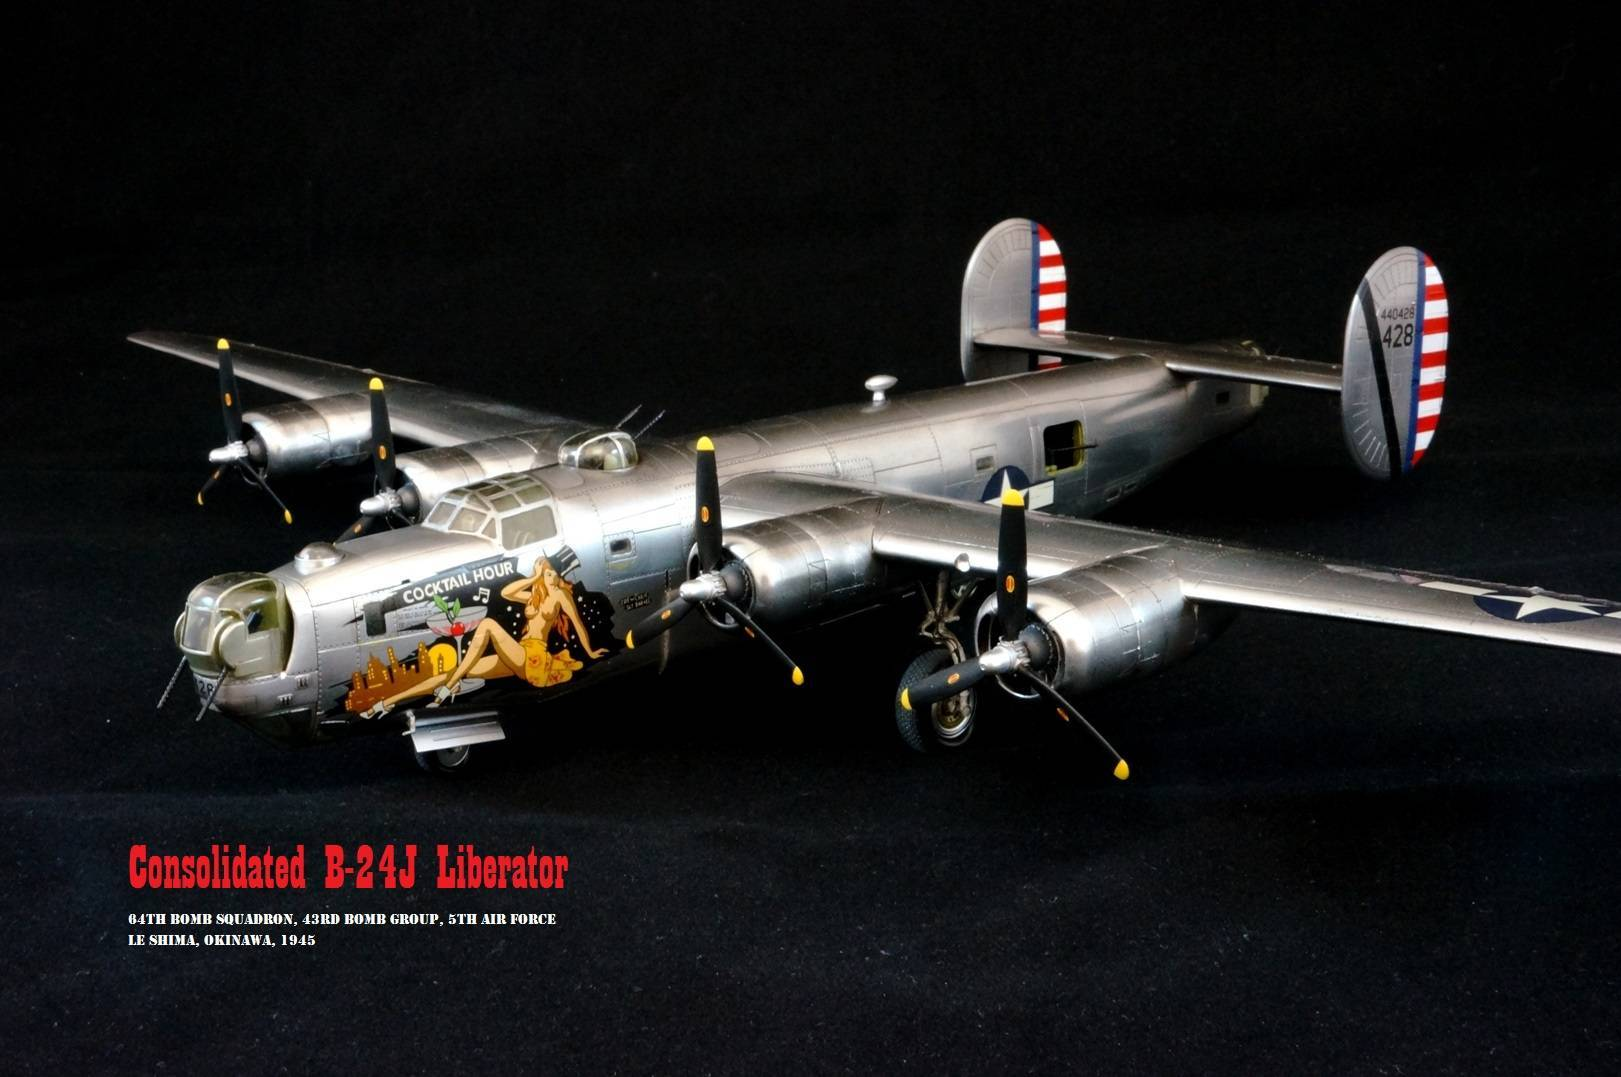 Consolidated b-24 liberator википедия